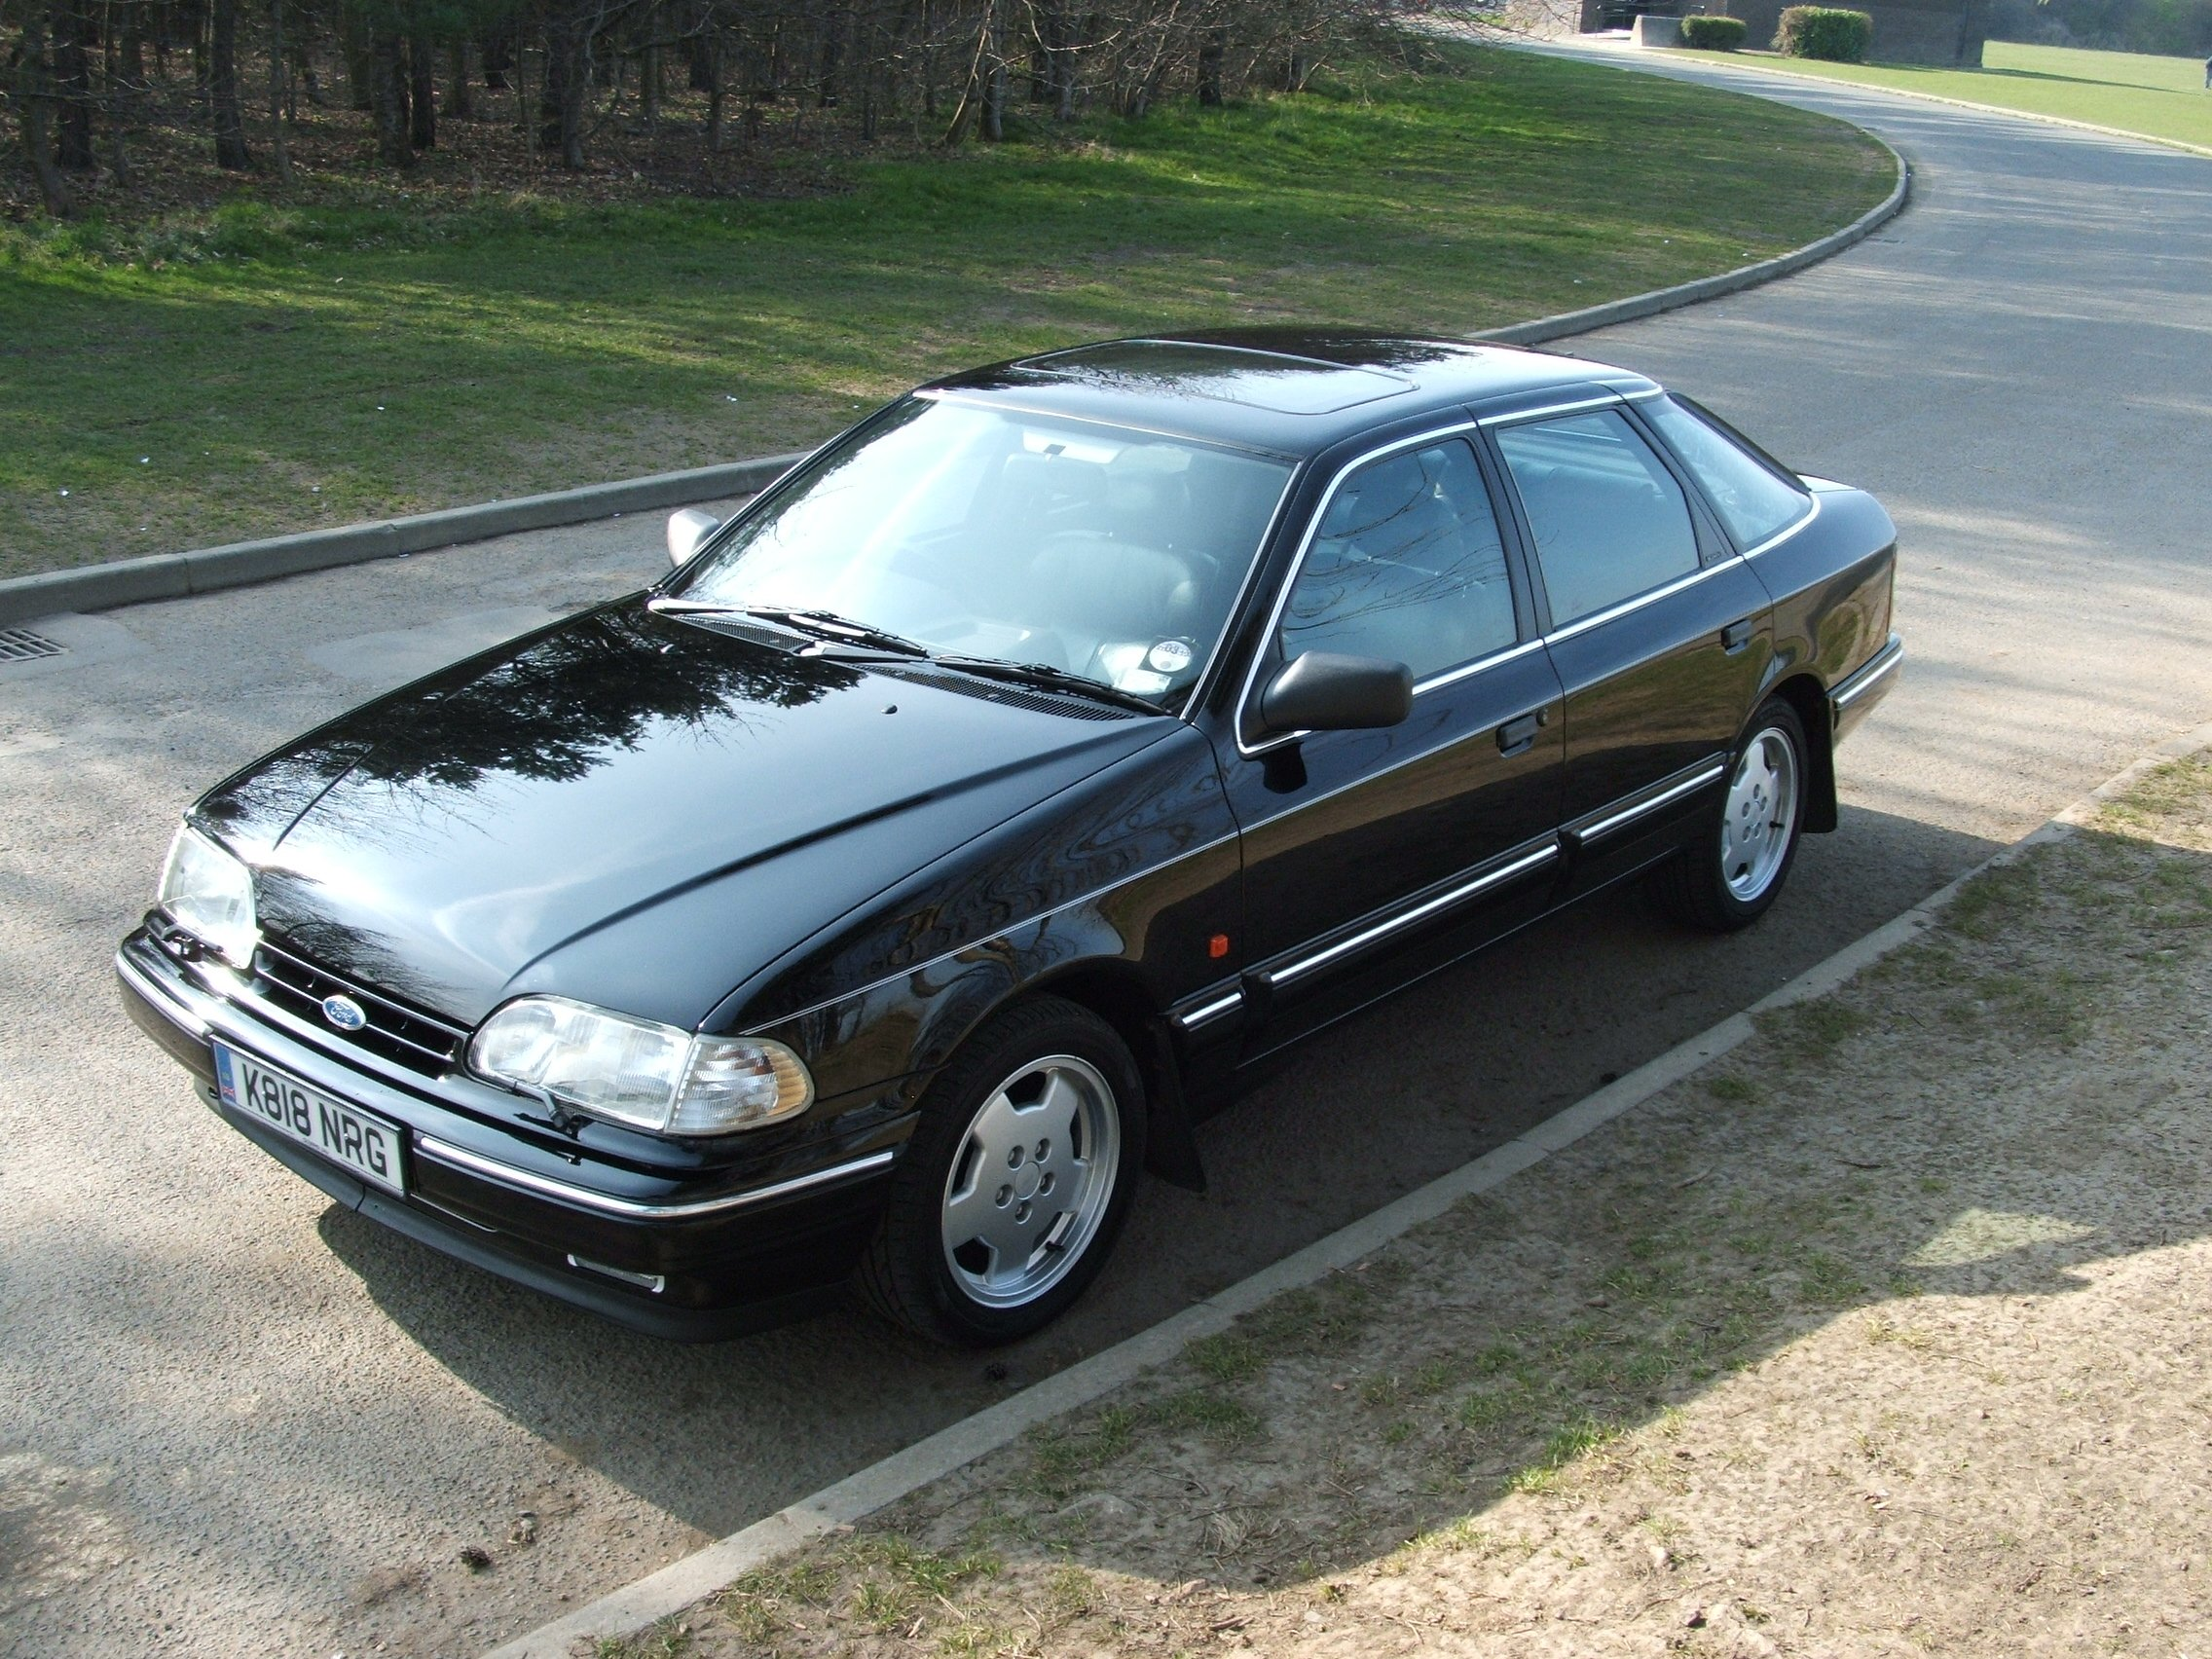 ford scorpio i wagon (gge) 1993 pictures